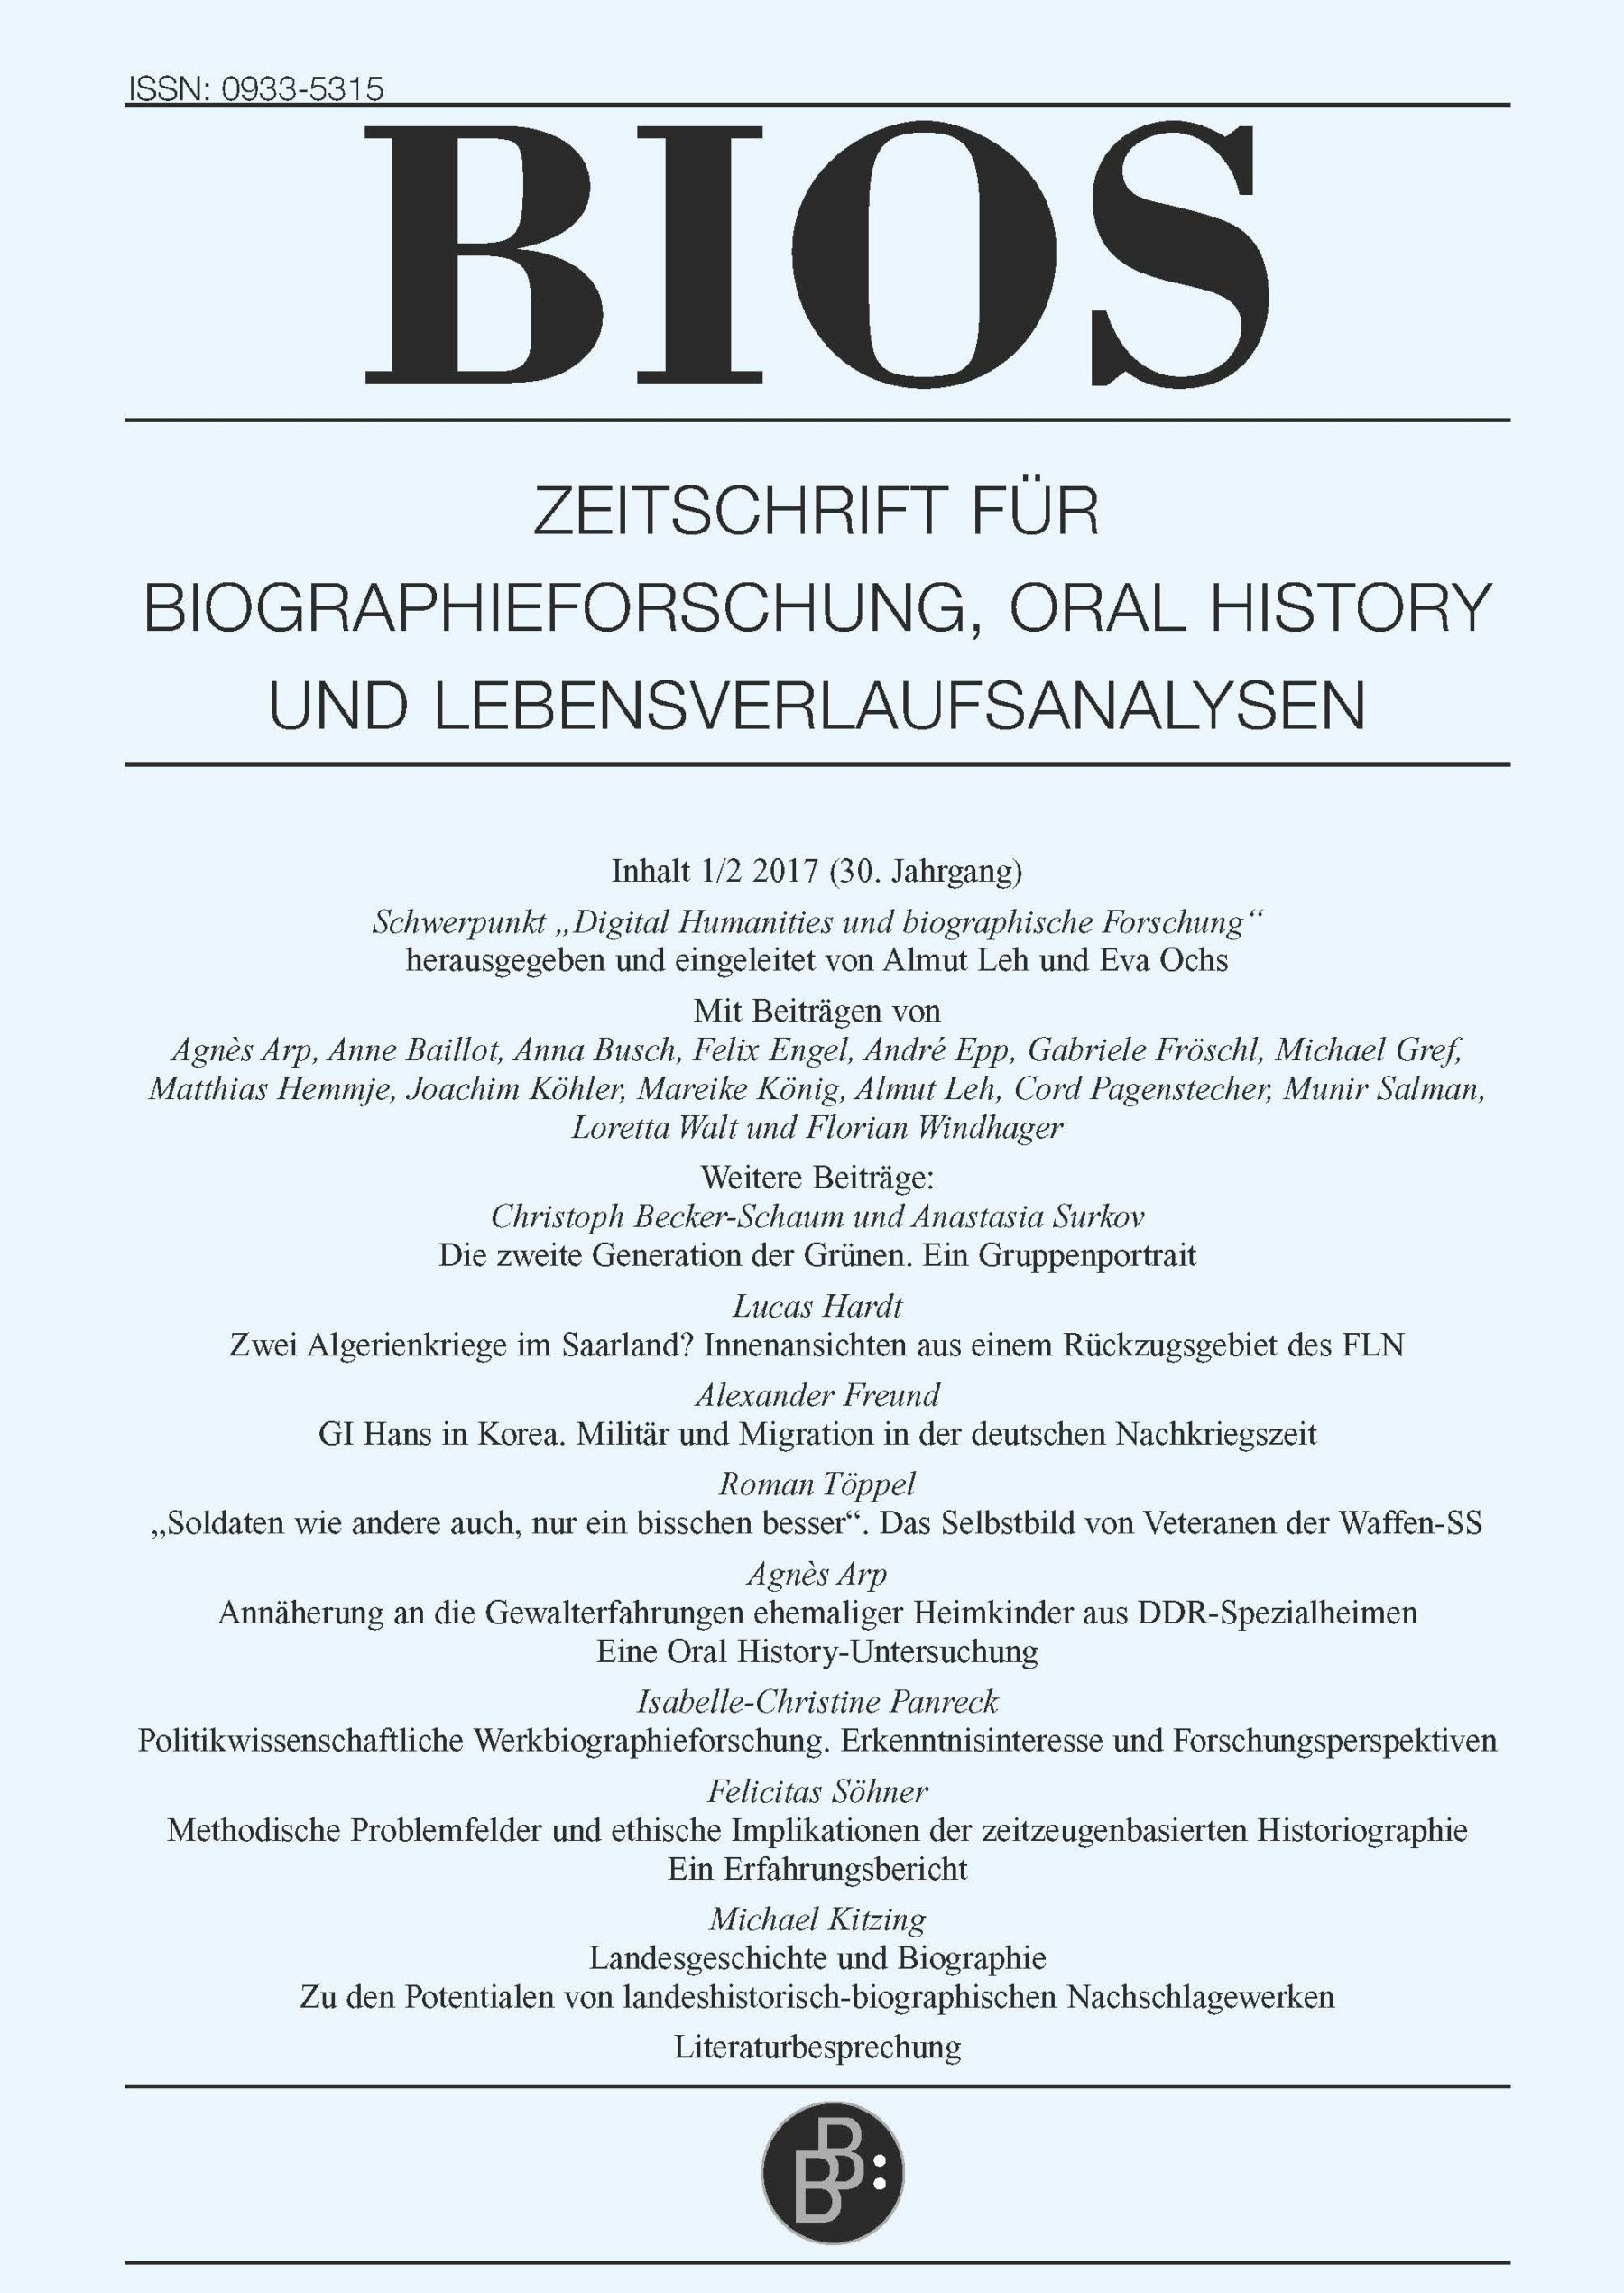 BIOS 1+2-2017 | Digital Humanities und biographische Forschung